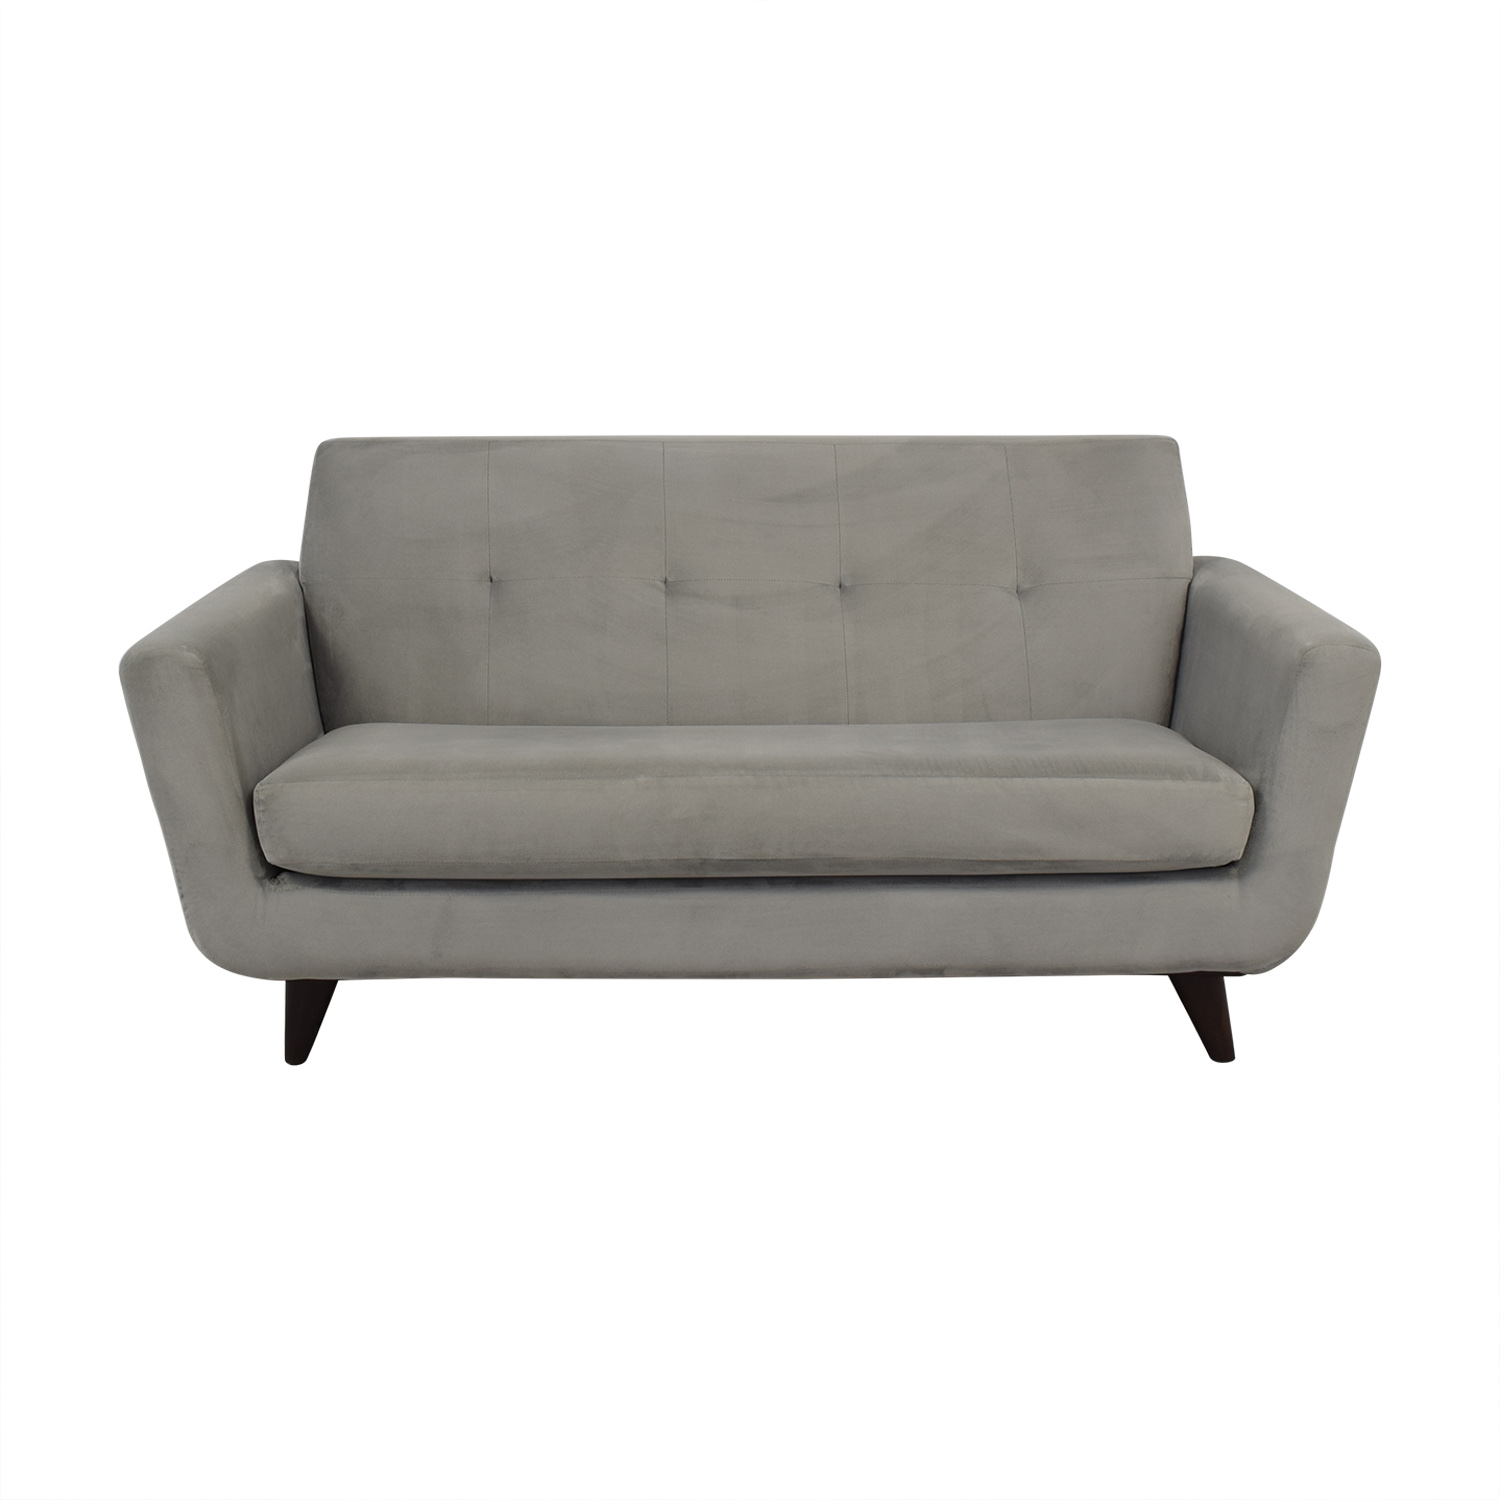 Joybird Joybird Hughes Apartment Sofa for sale